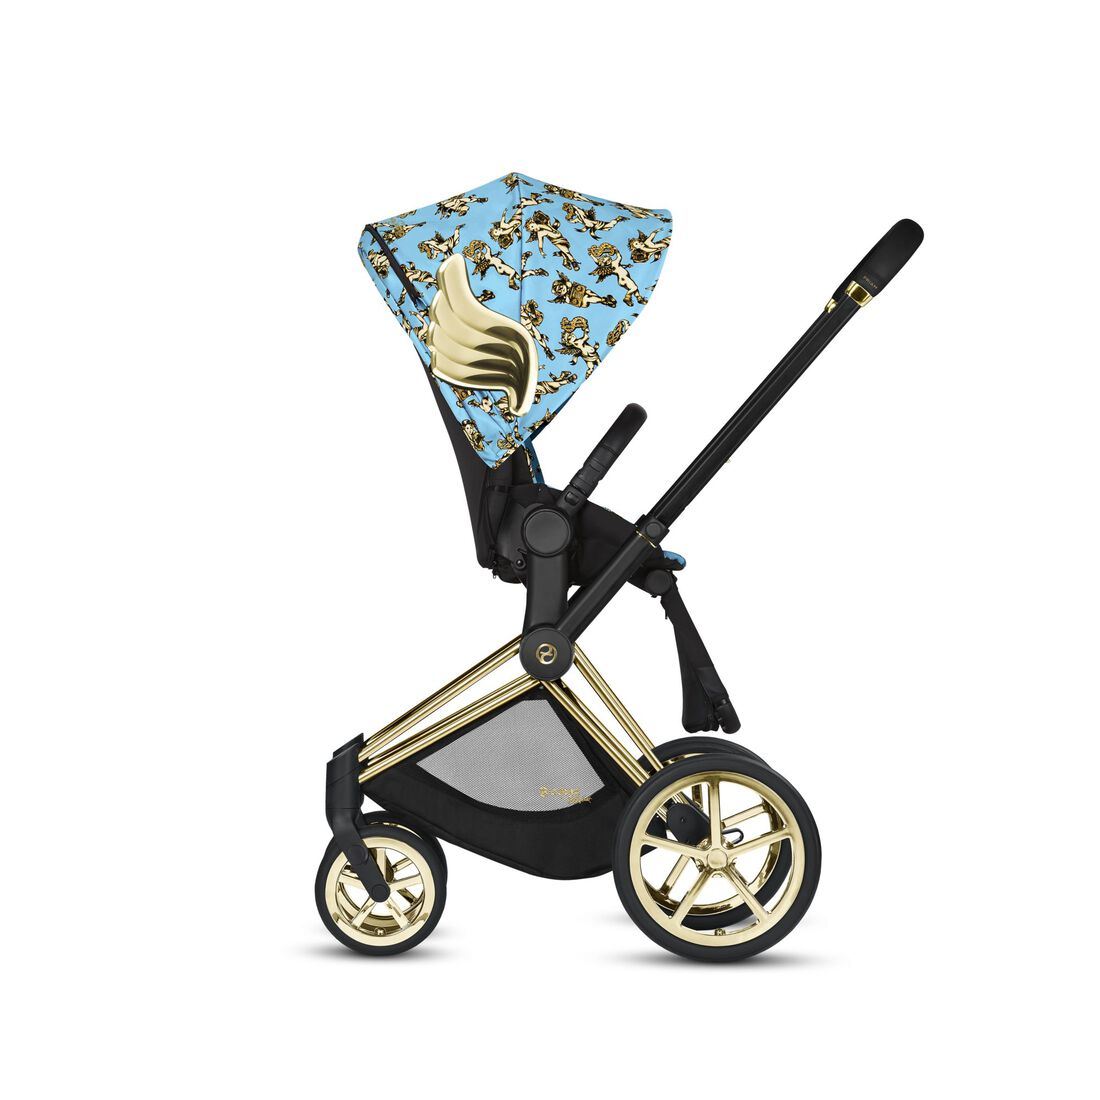 CYBEX Priam Jeremy Scott - Cherubs Blue in Cherubs Blue large Bild 2